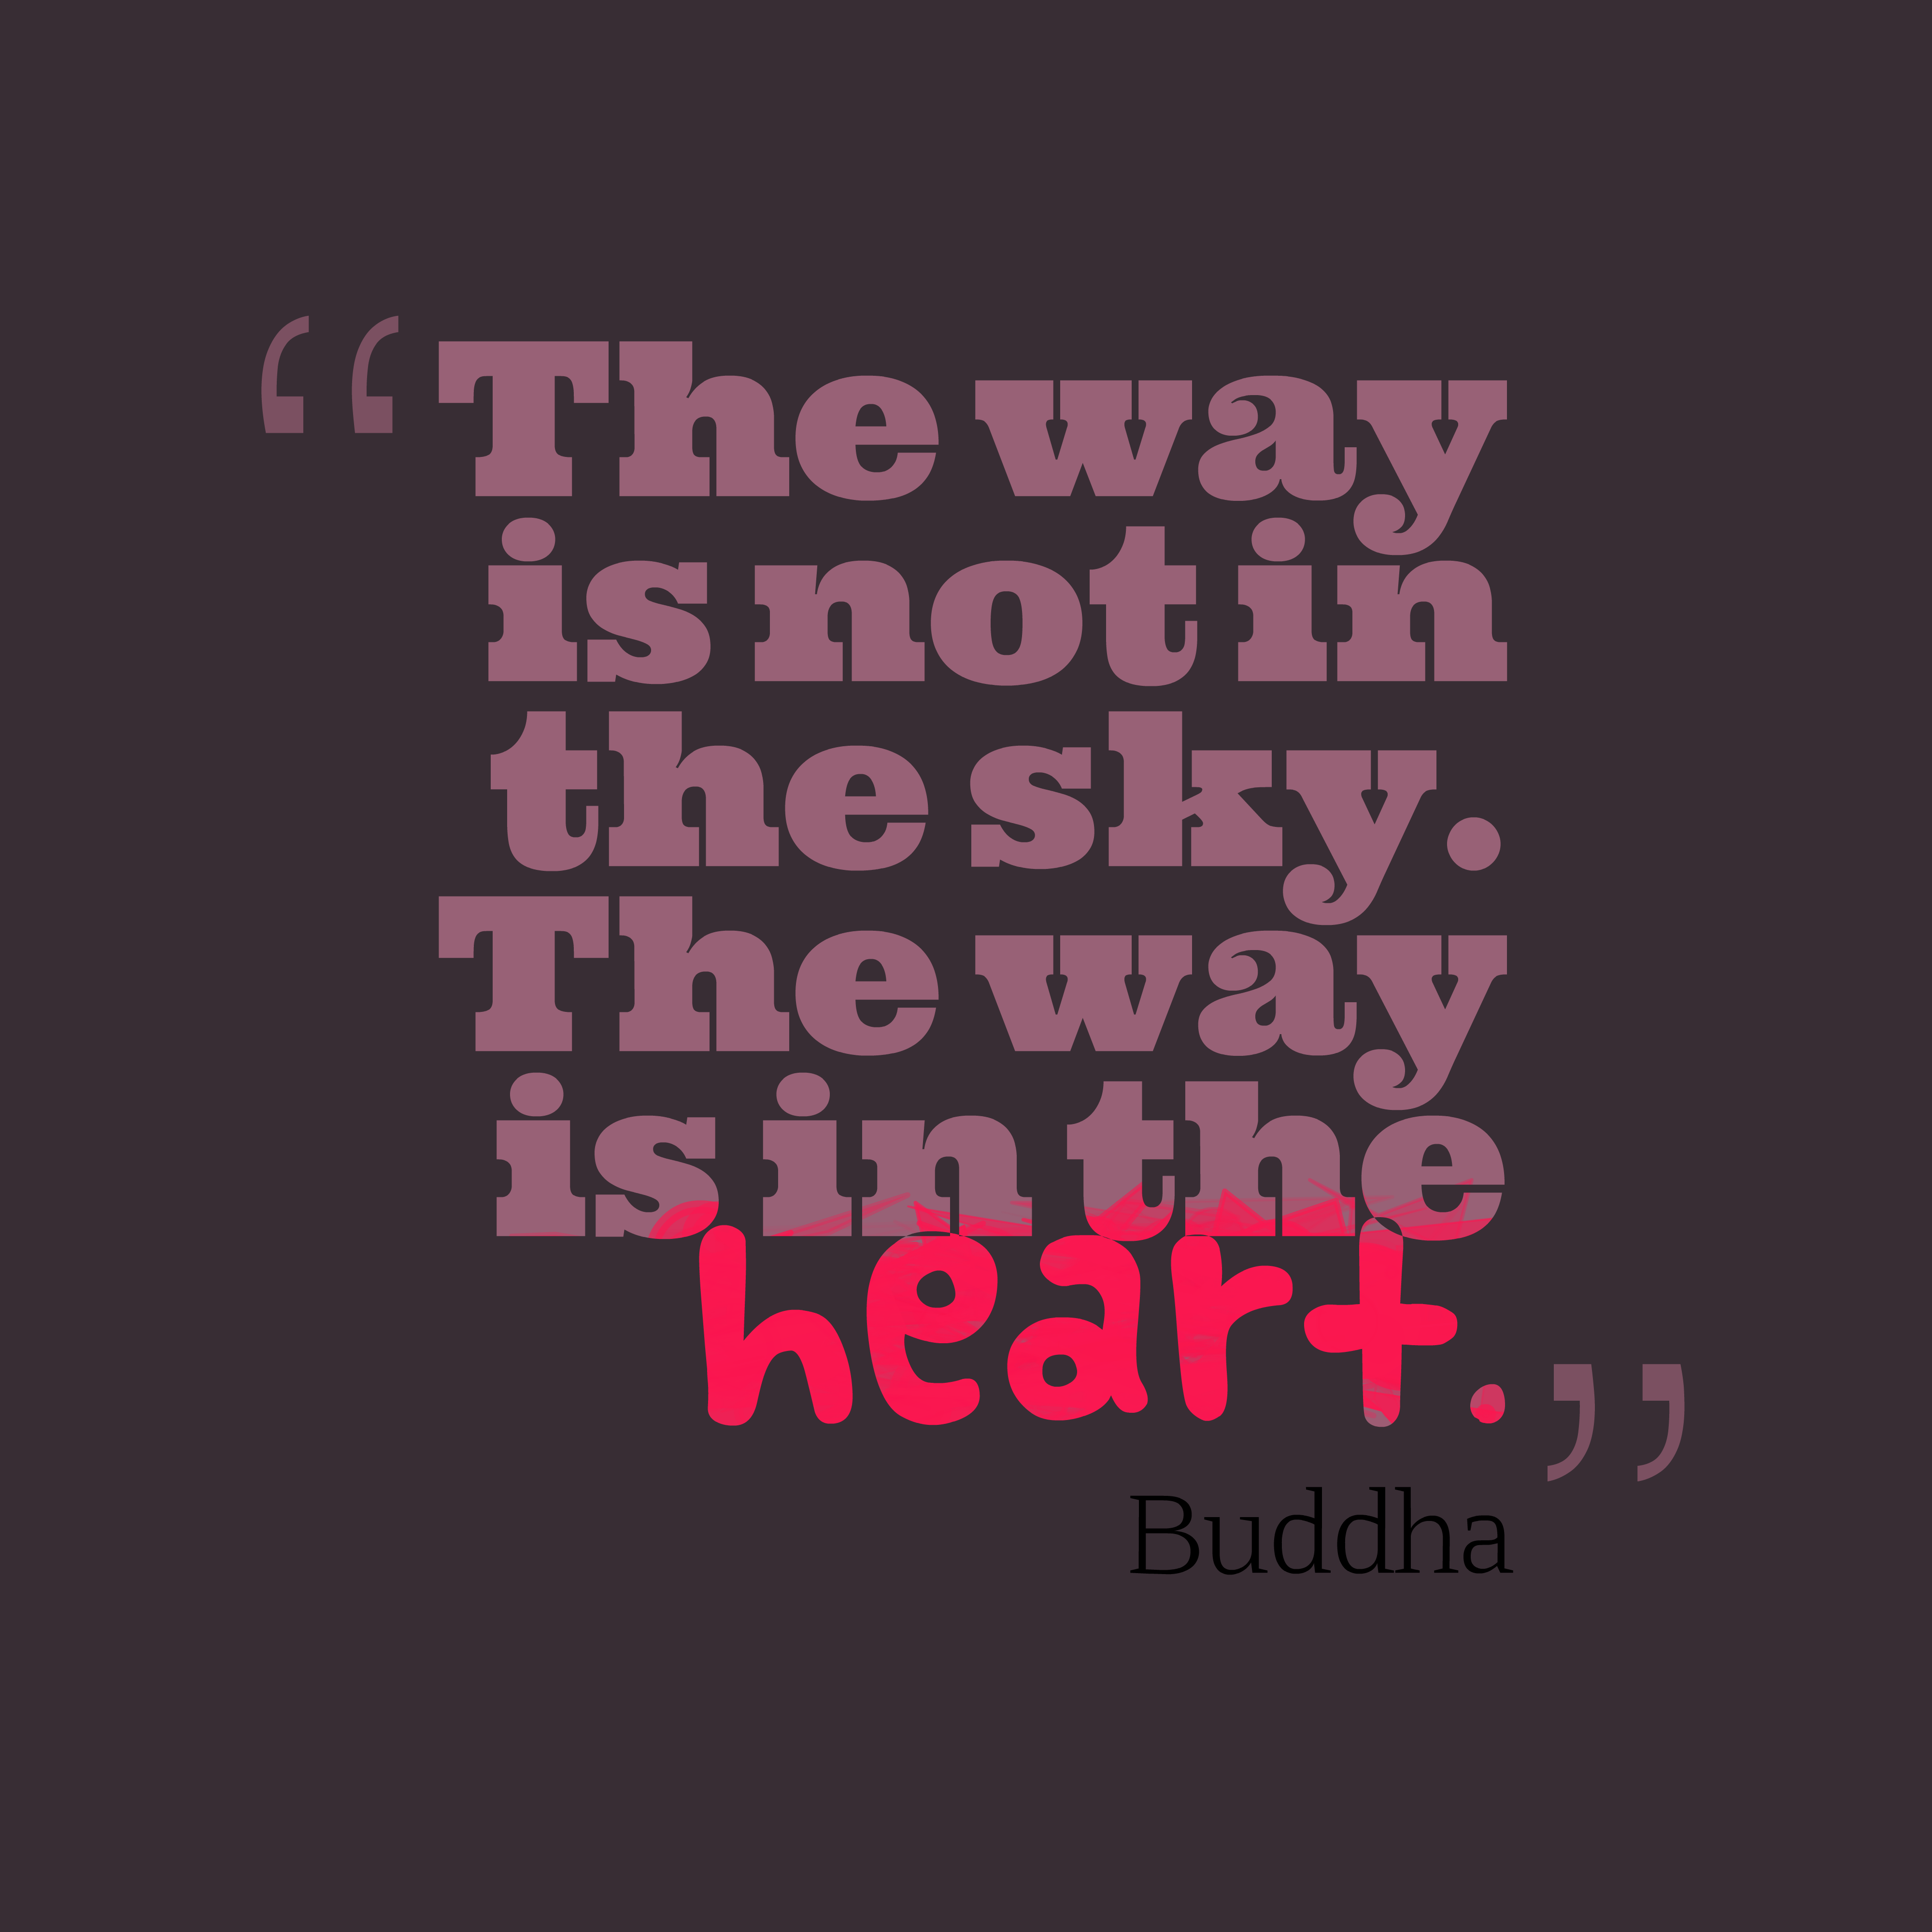 Buddhist Quotes On Death 164 Best Buddha Last Words Before His Death Quotes Images